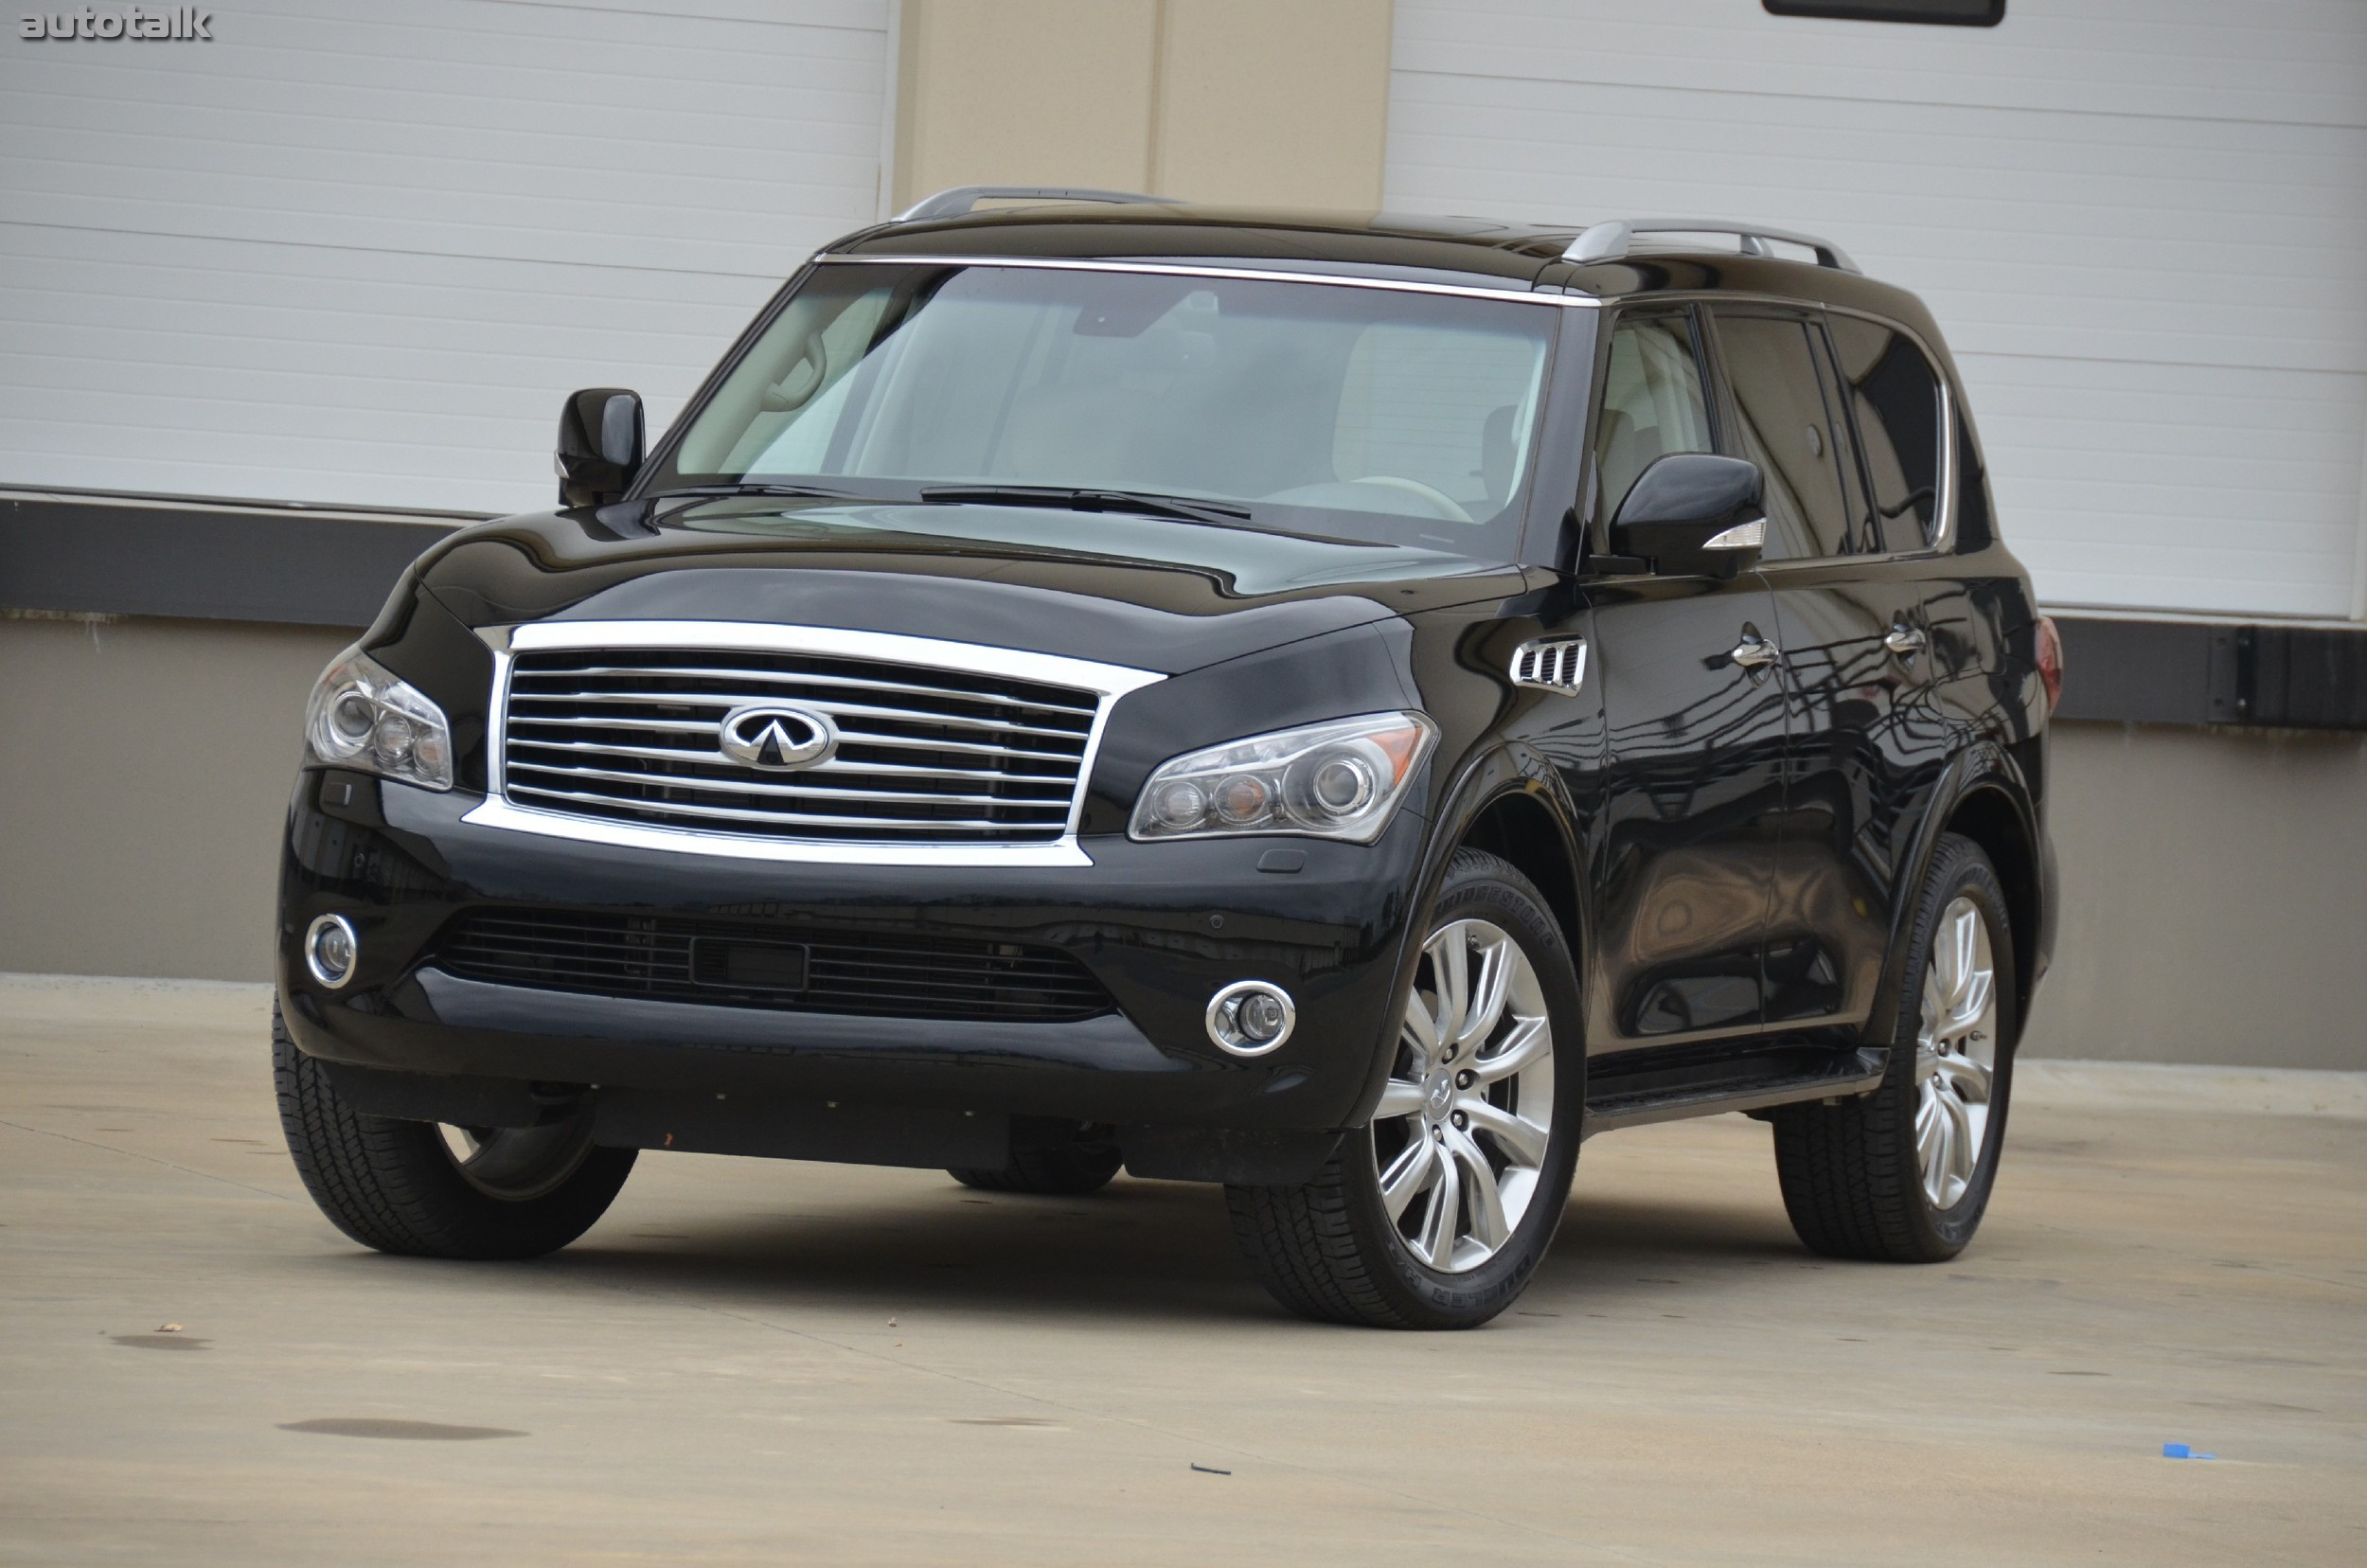 2013 Infiniti QX56 Review